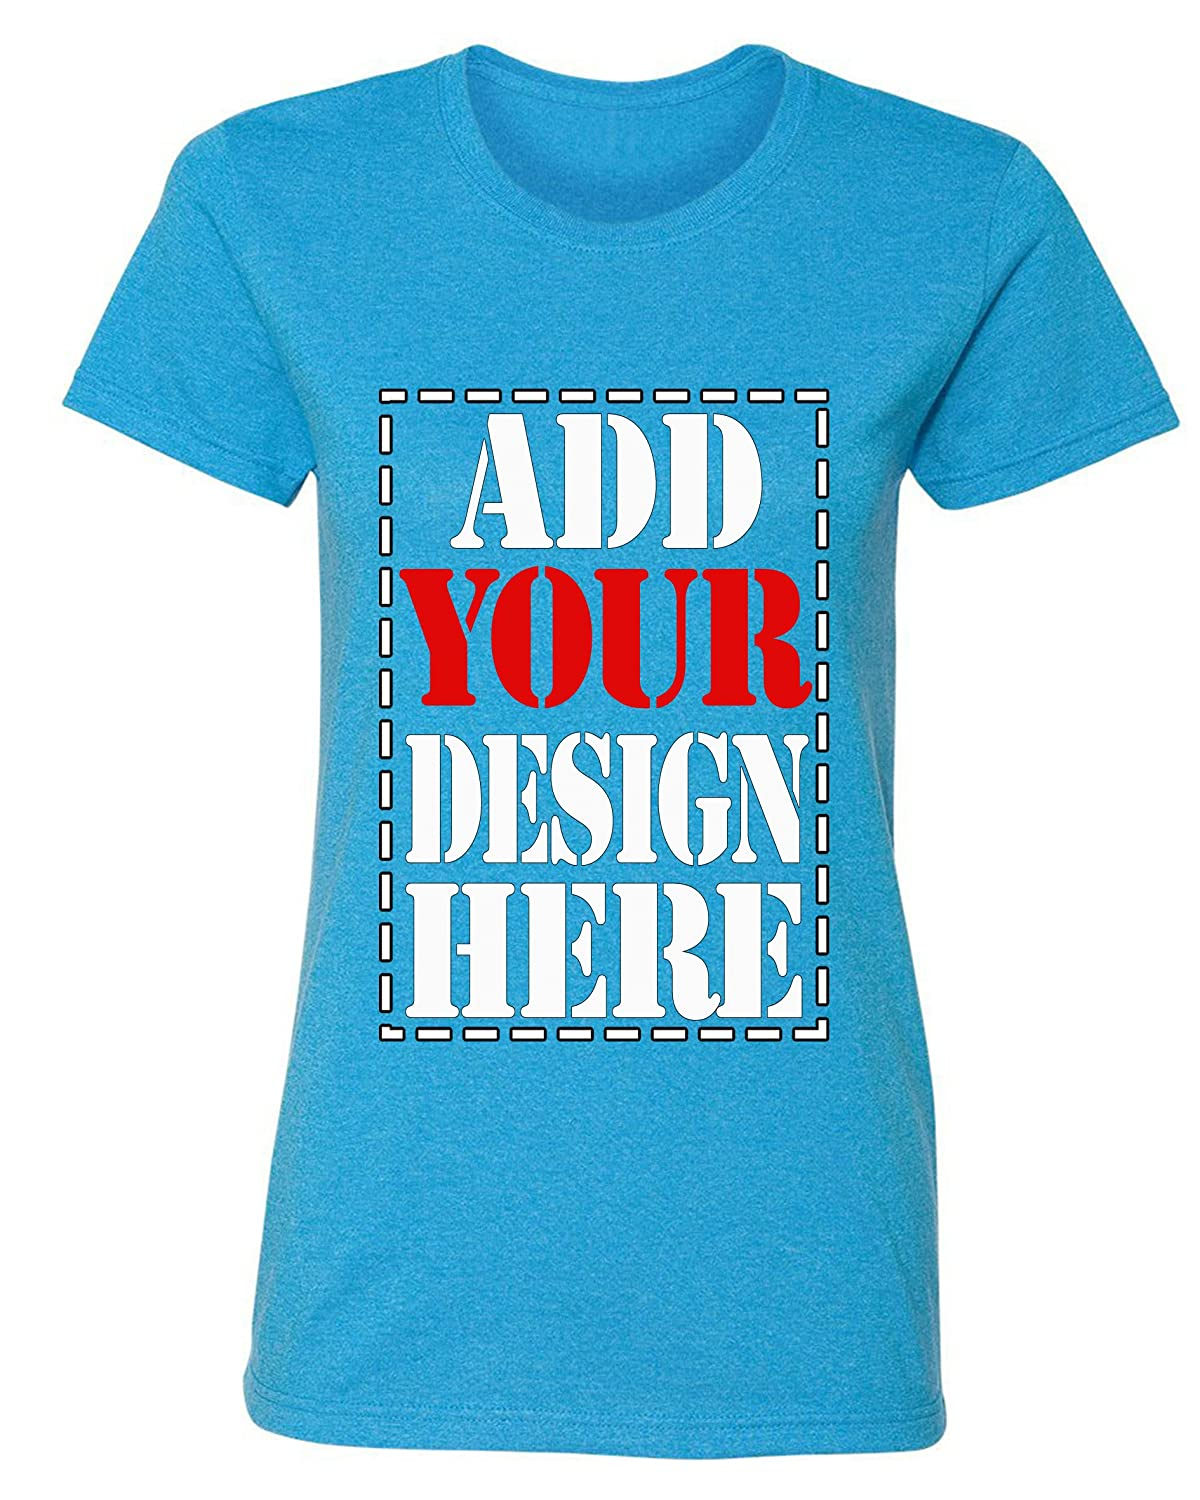 54632e54 Amazon.com: Design Your OWN Shirt Customized T-Shirt - Add Your Picture  Photo Text Print - Women Tee (Slim Fit): Clothing